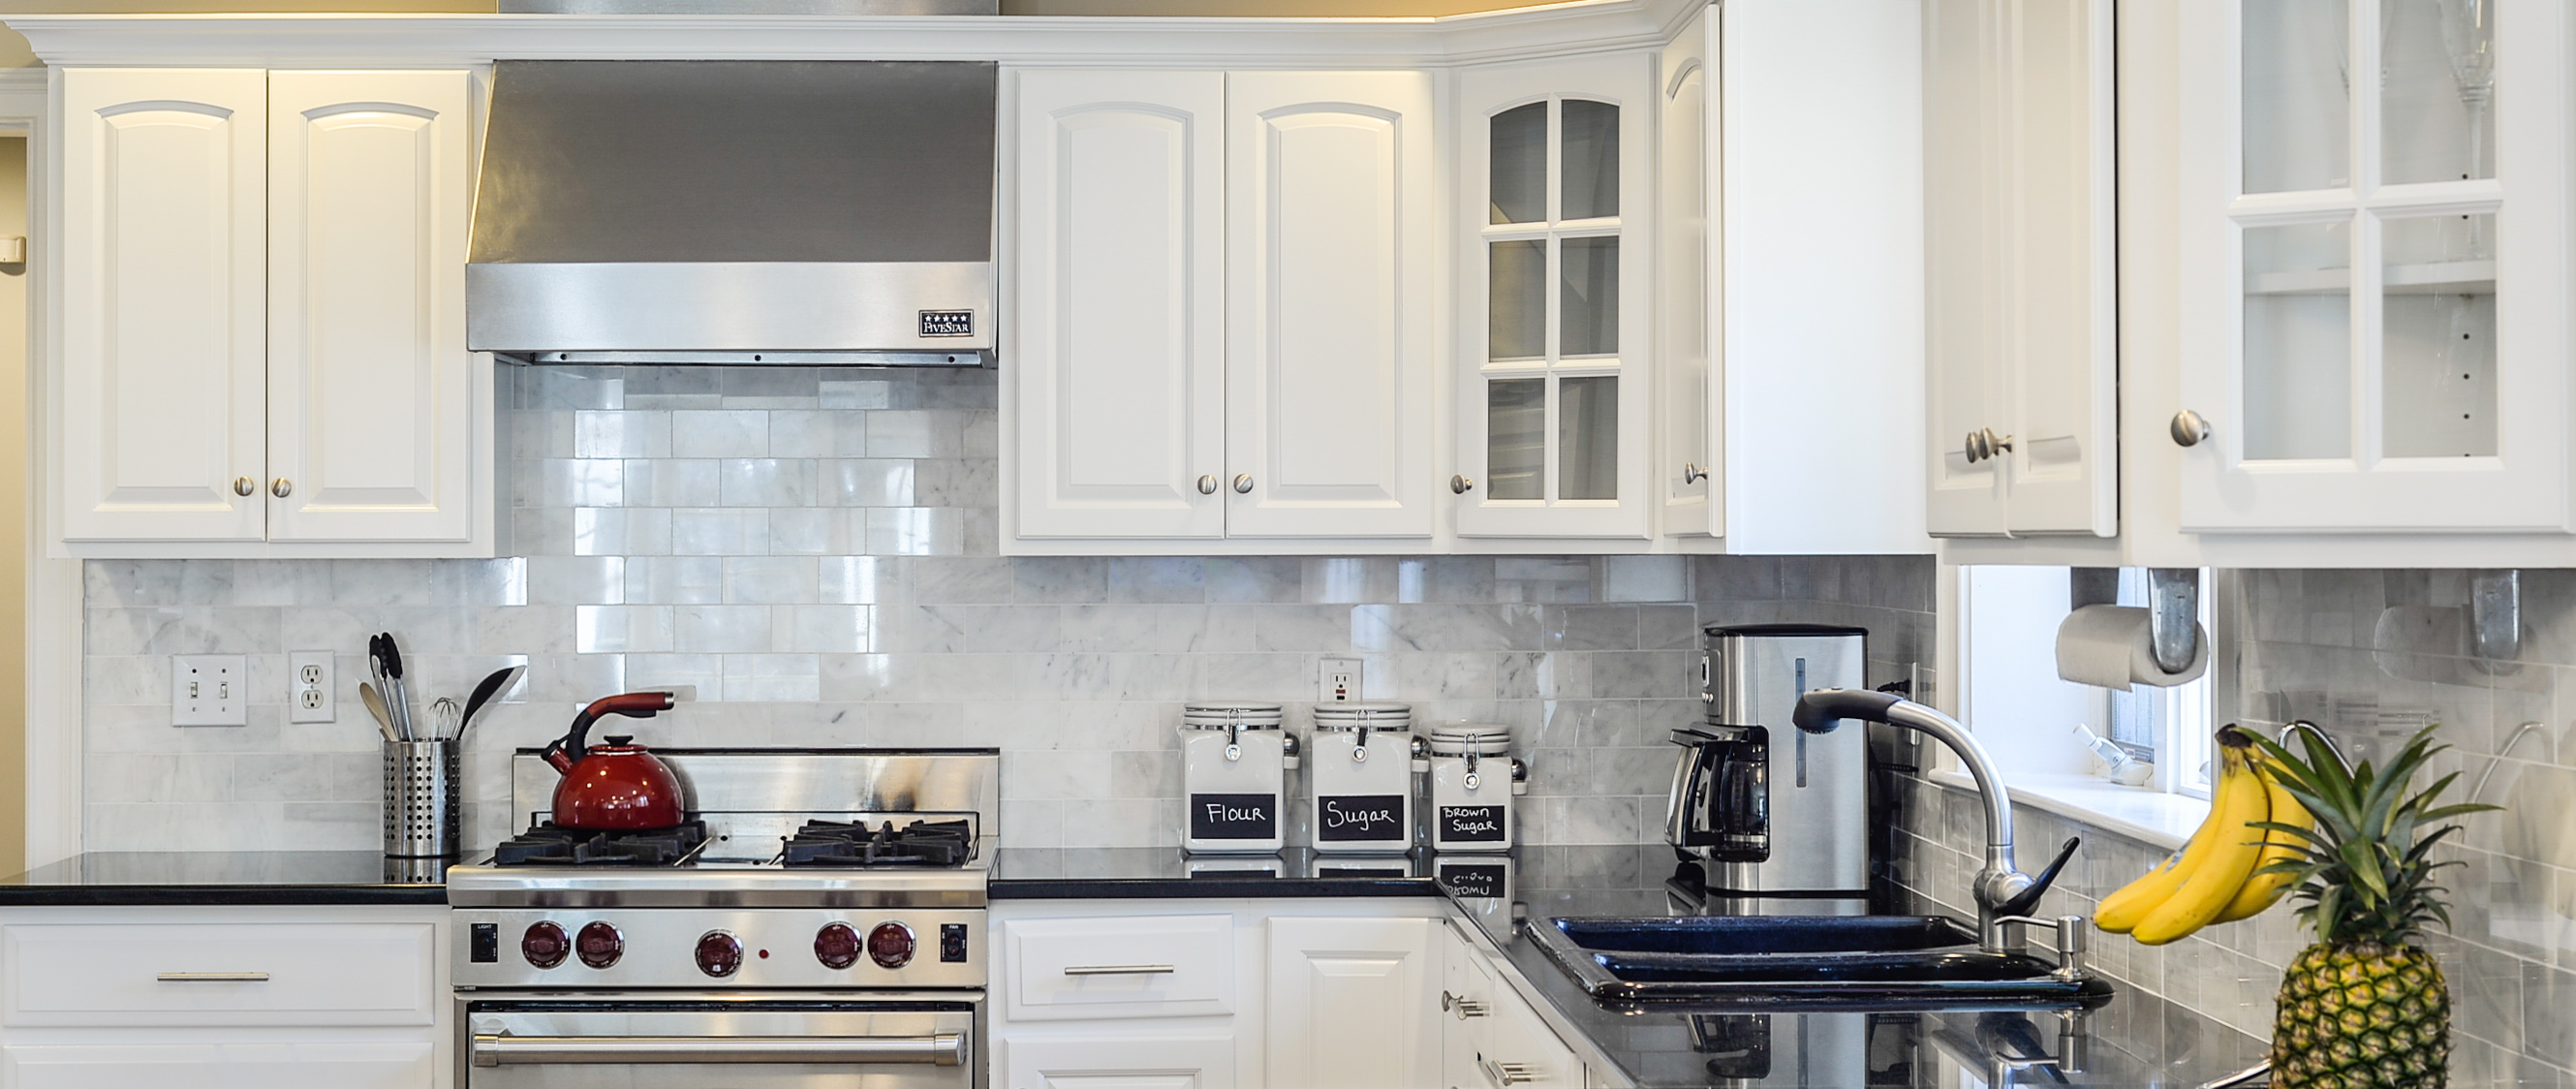 Wondrous Alpha Painting Kitchen Cabinets Andover Boxford Complete Home Design Collection Papxelindsey Bellcom